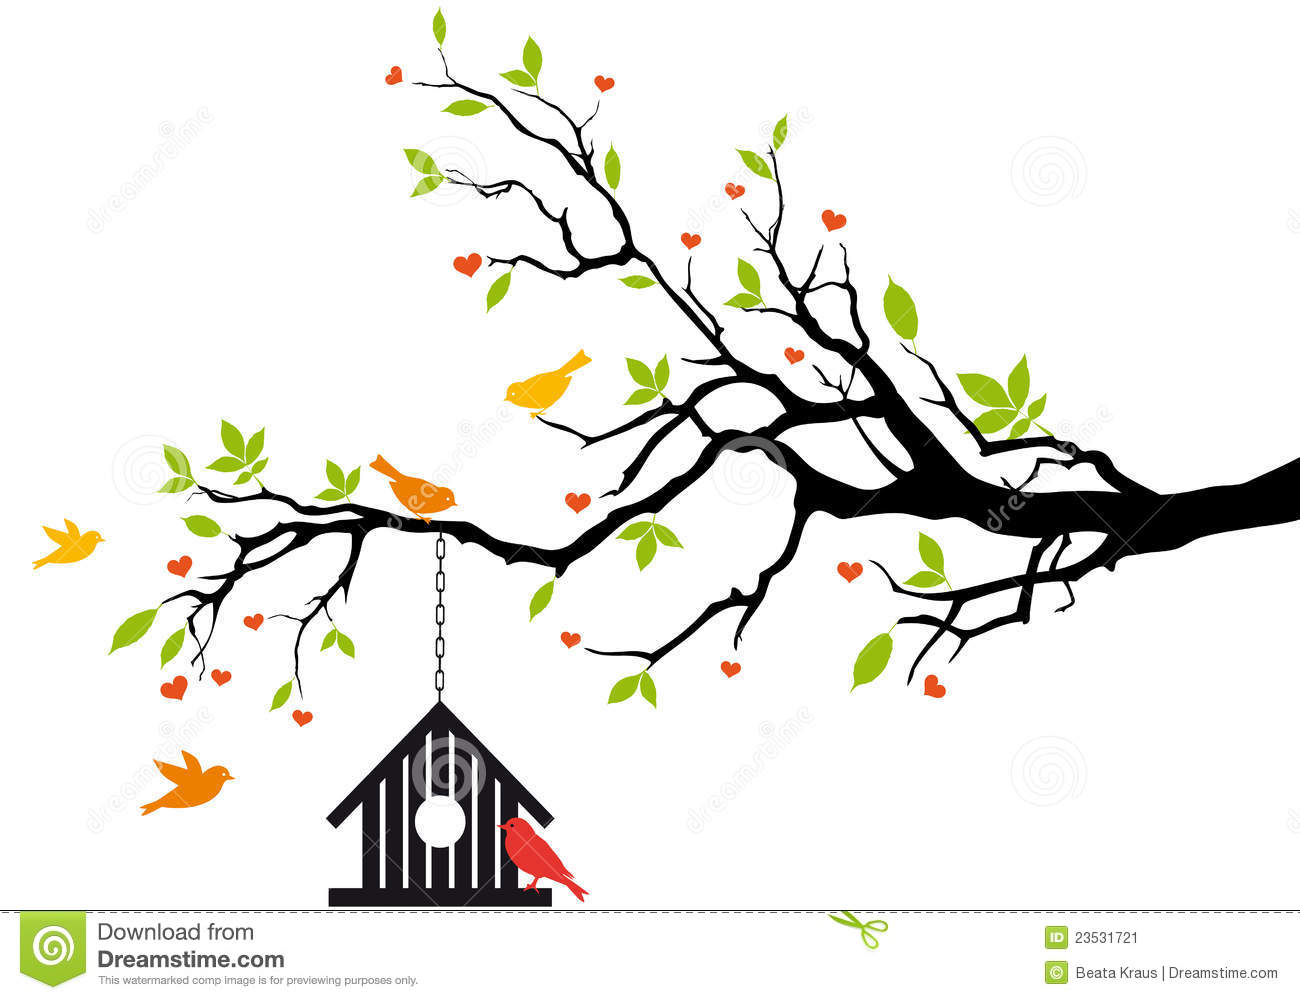 Abstract bird in tree clipart clipart images gallery for.